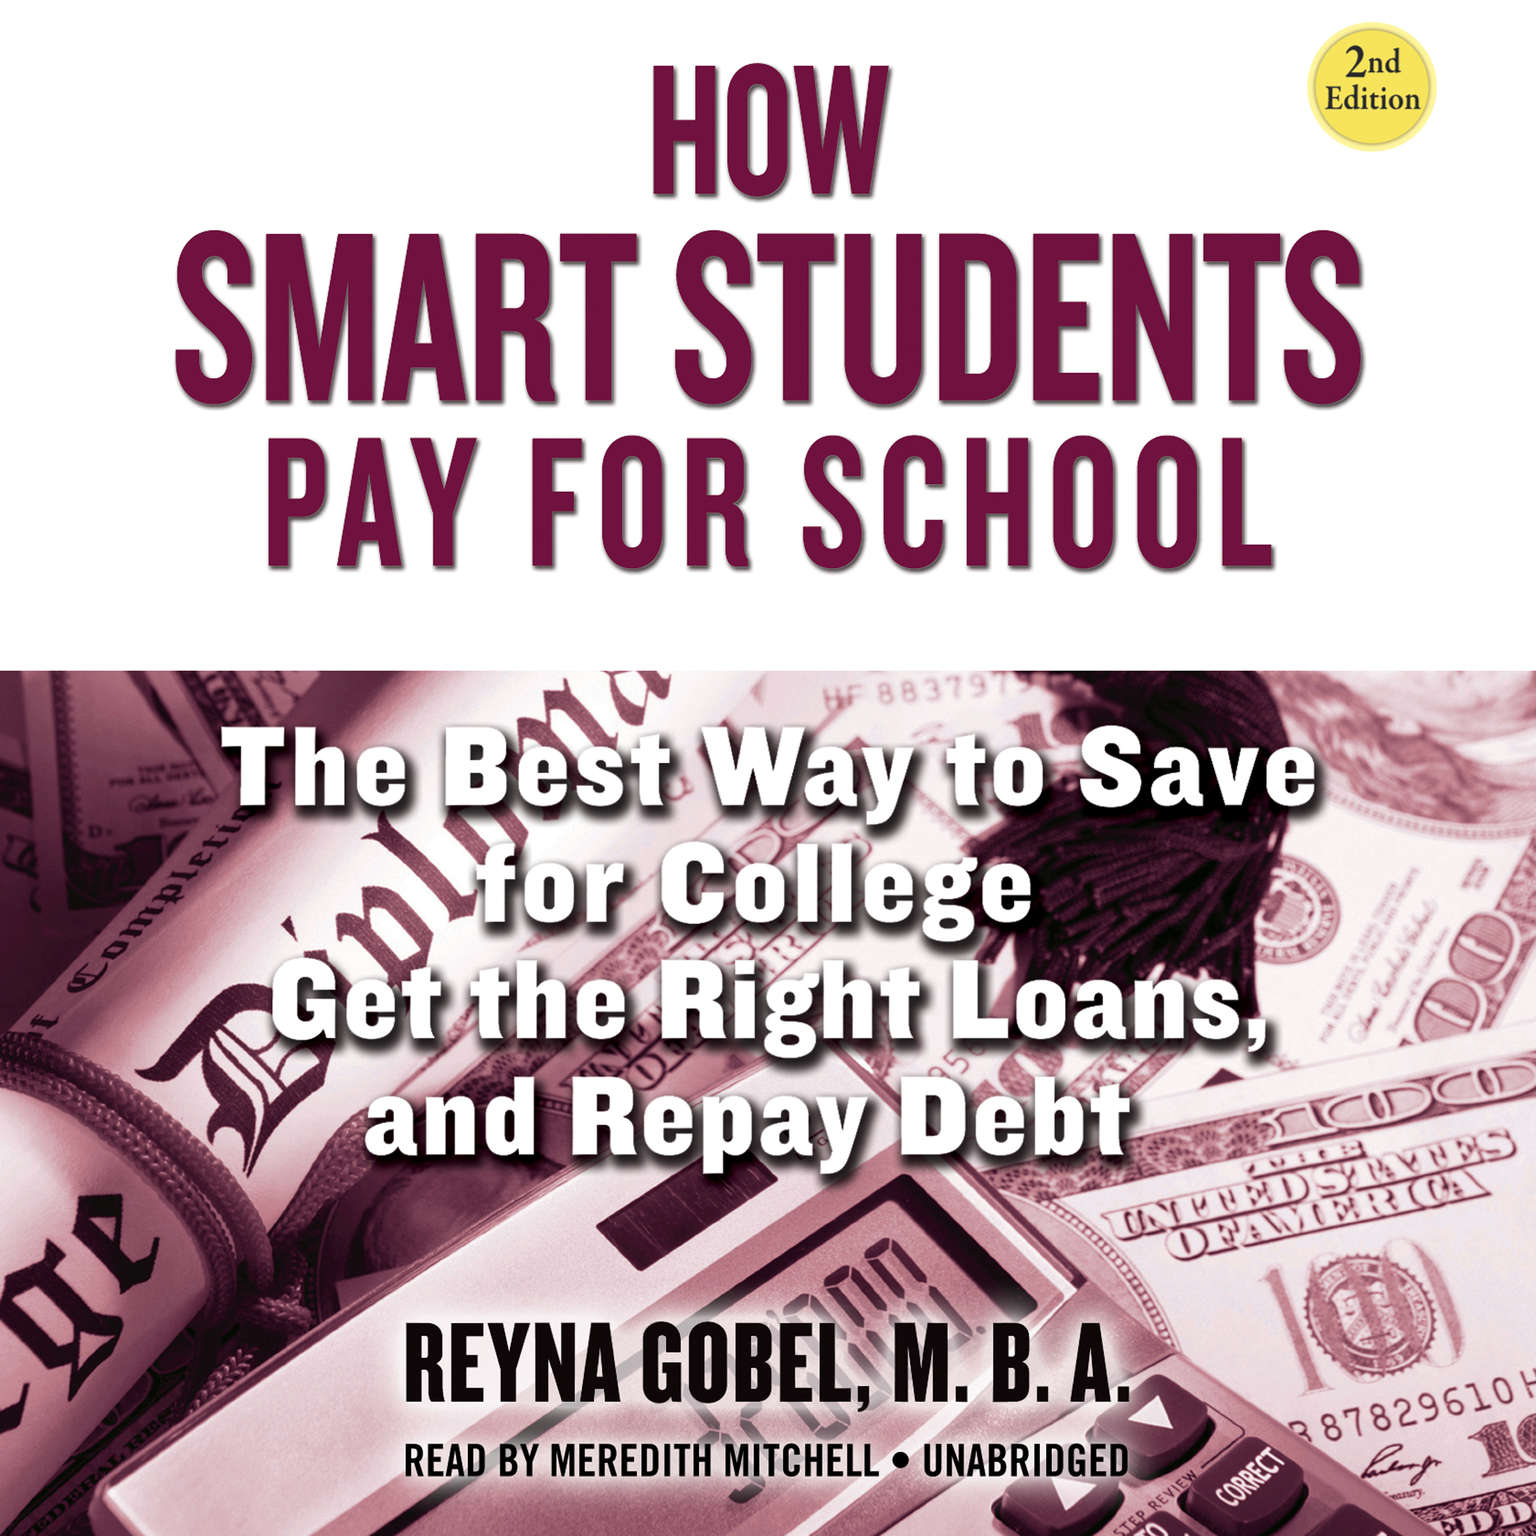 Printable How Smart Students Pay for School, 2nd Edition: The Best Way to Save for College, Get the Right Loans, and Repay Debt Audiobook Cover Art